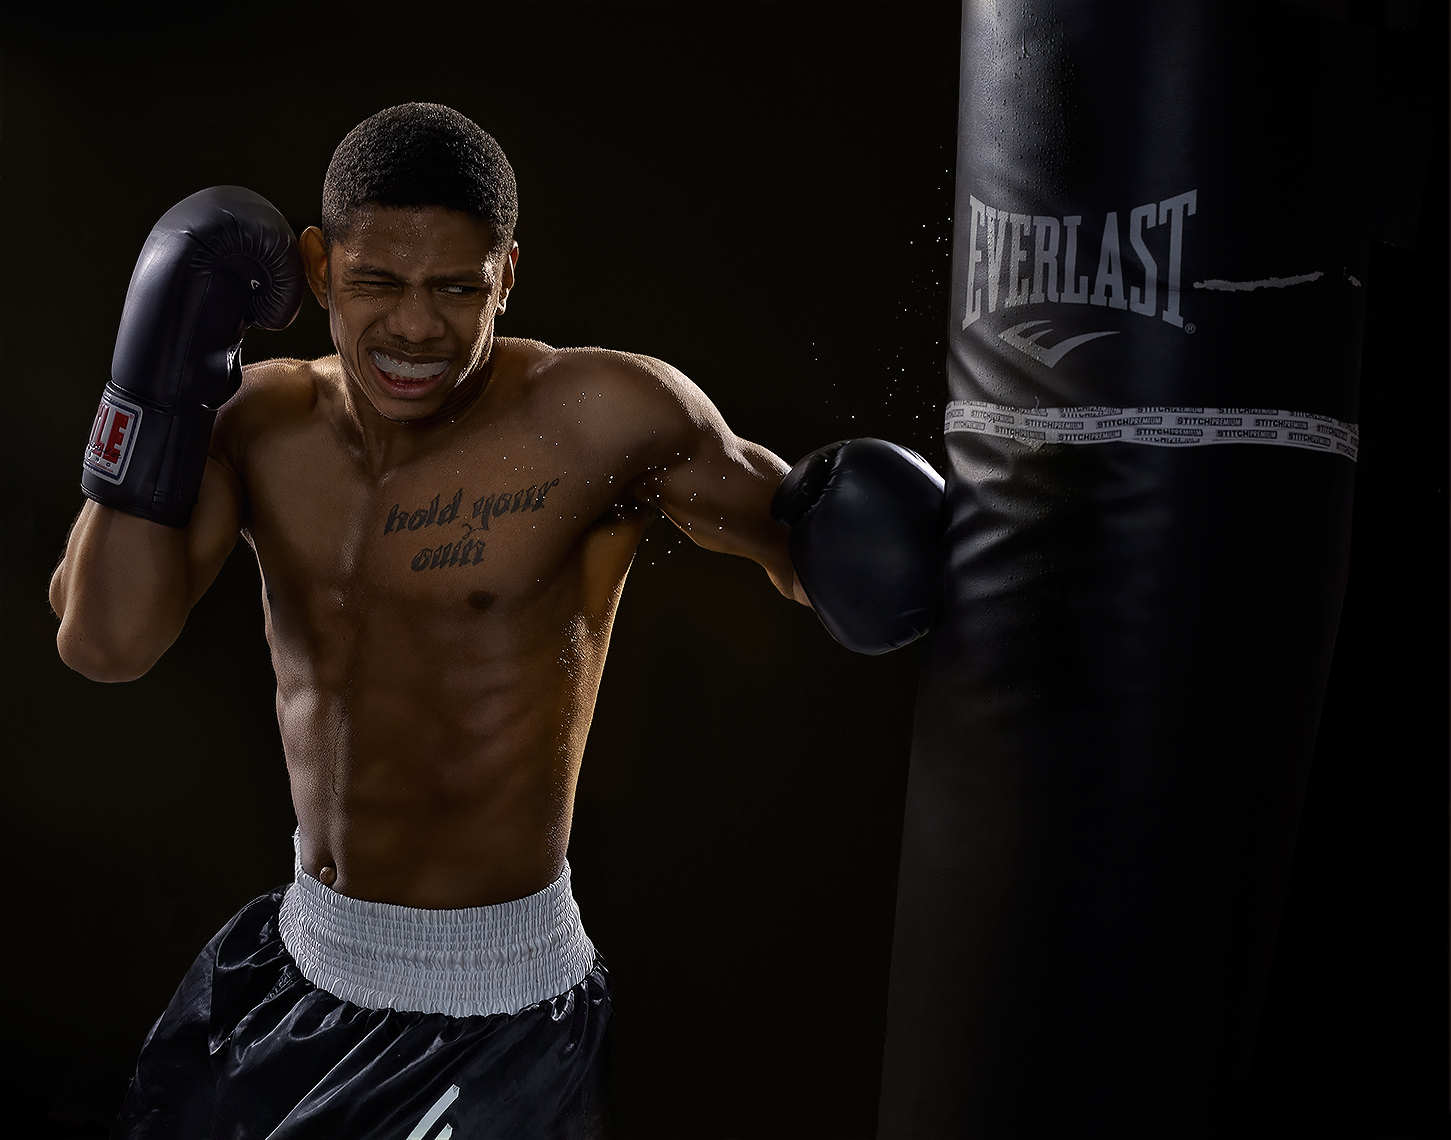 boxer Amonte Eberhardt hitting heavy bag by brian kaldorf